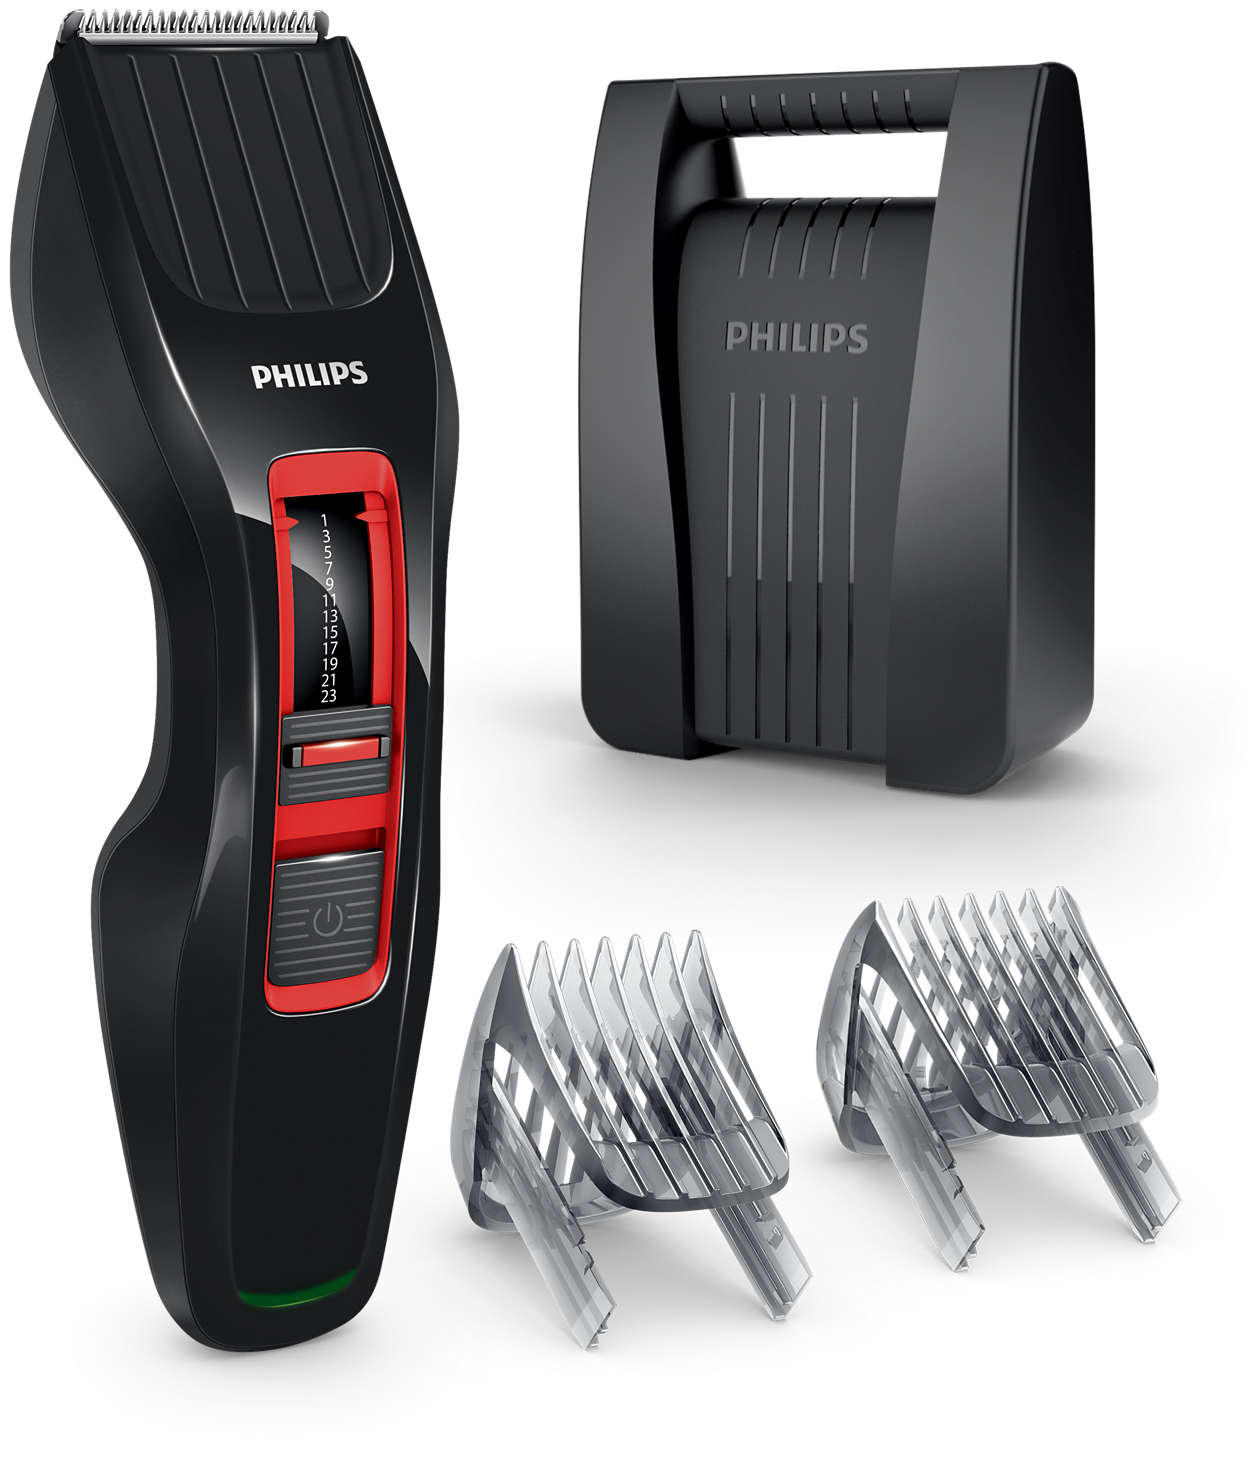 hairclipper series 3000 tondeuse cheveux hc3420 80 philips. Black Bedroom Furniture Sets. Home Design Ideas